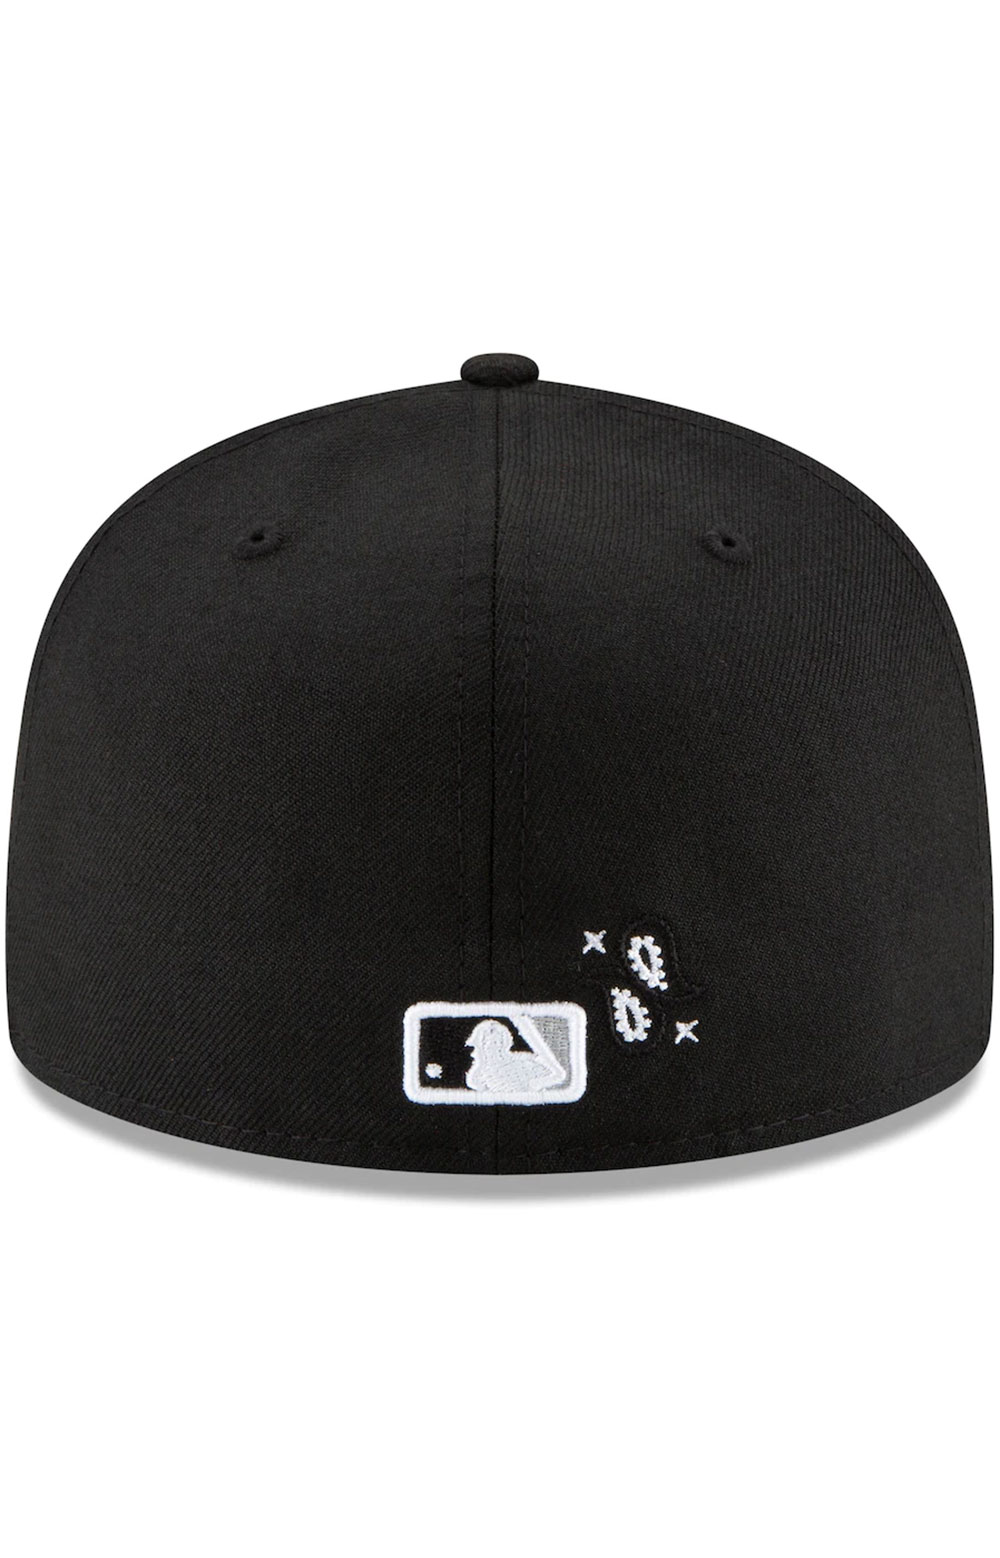 Chicago White Sox Paisley Elements 59Fifty Fitted Hat - Black  4